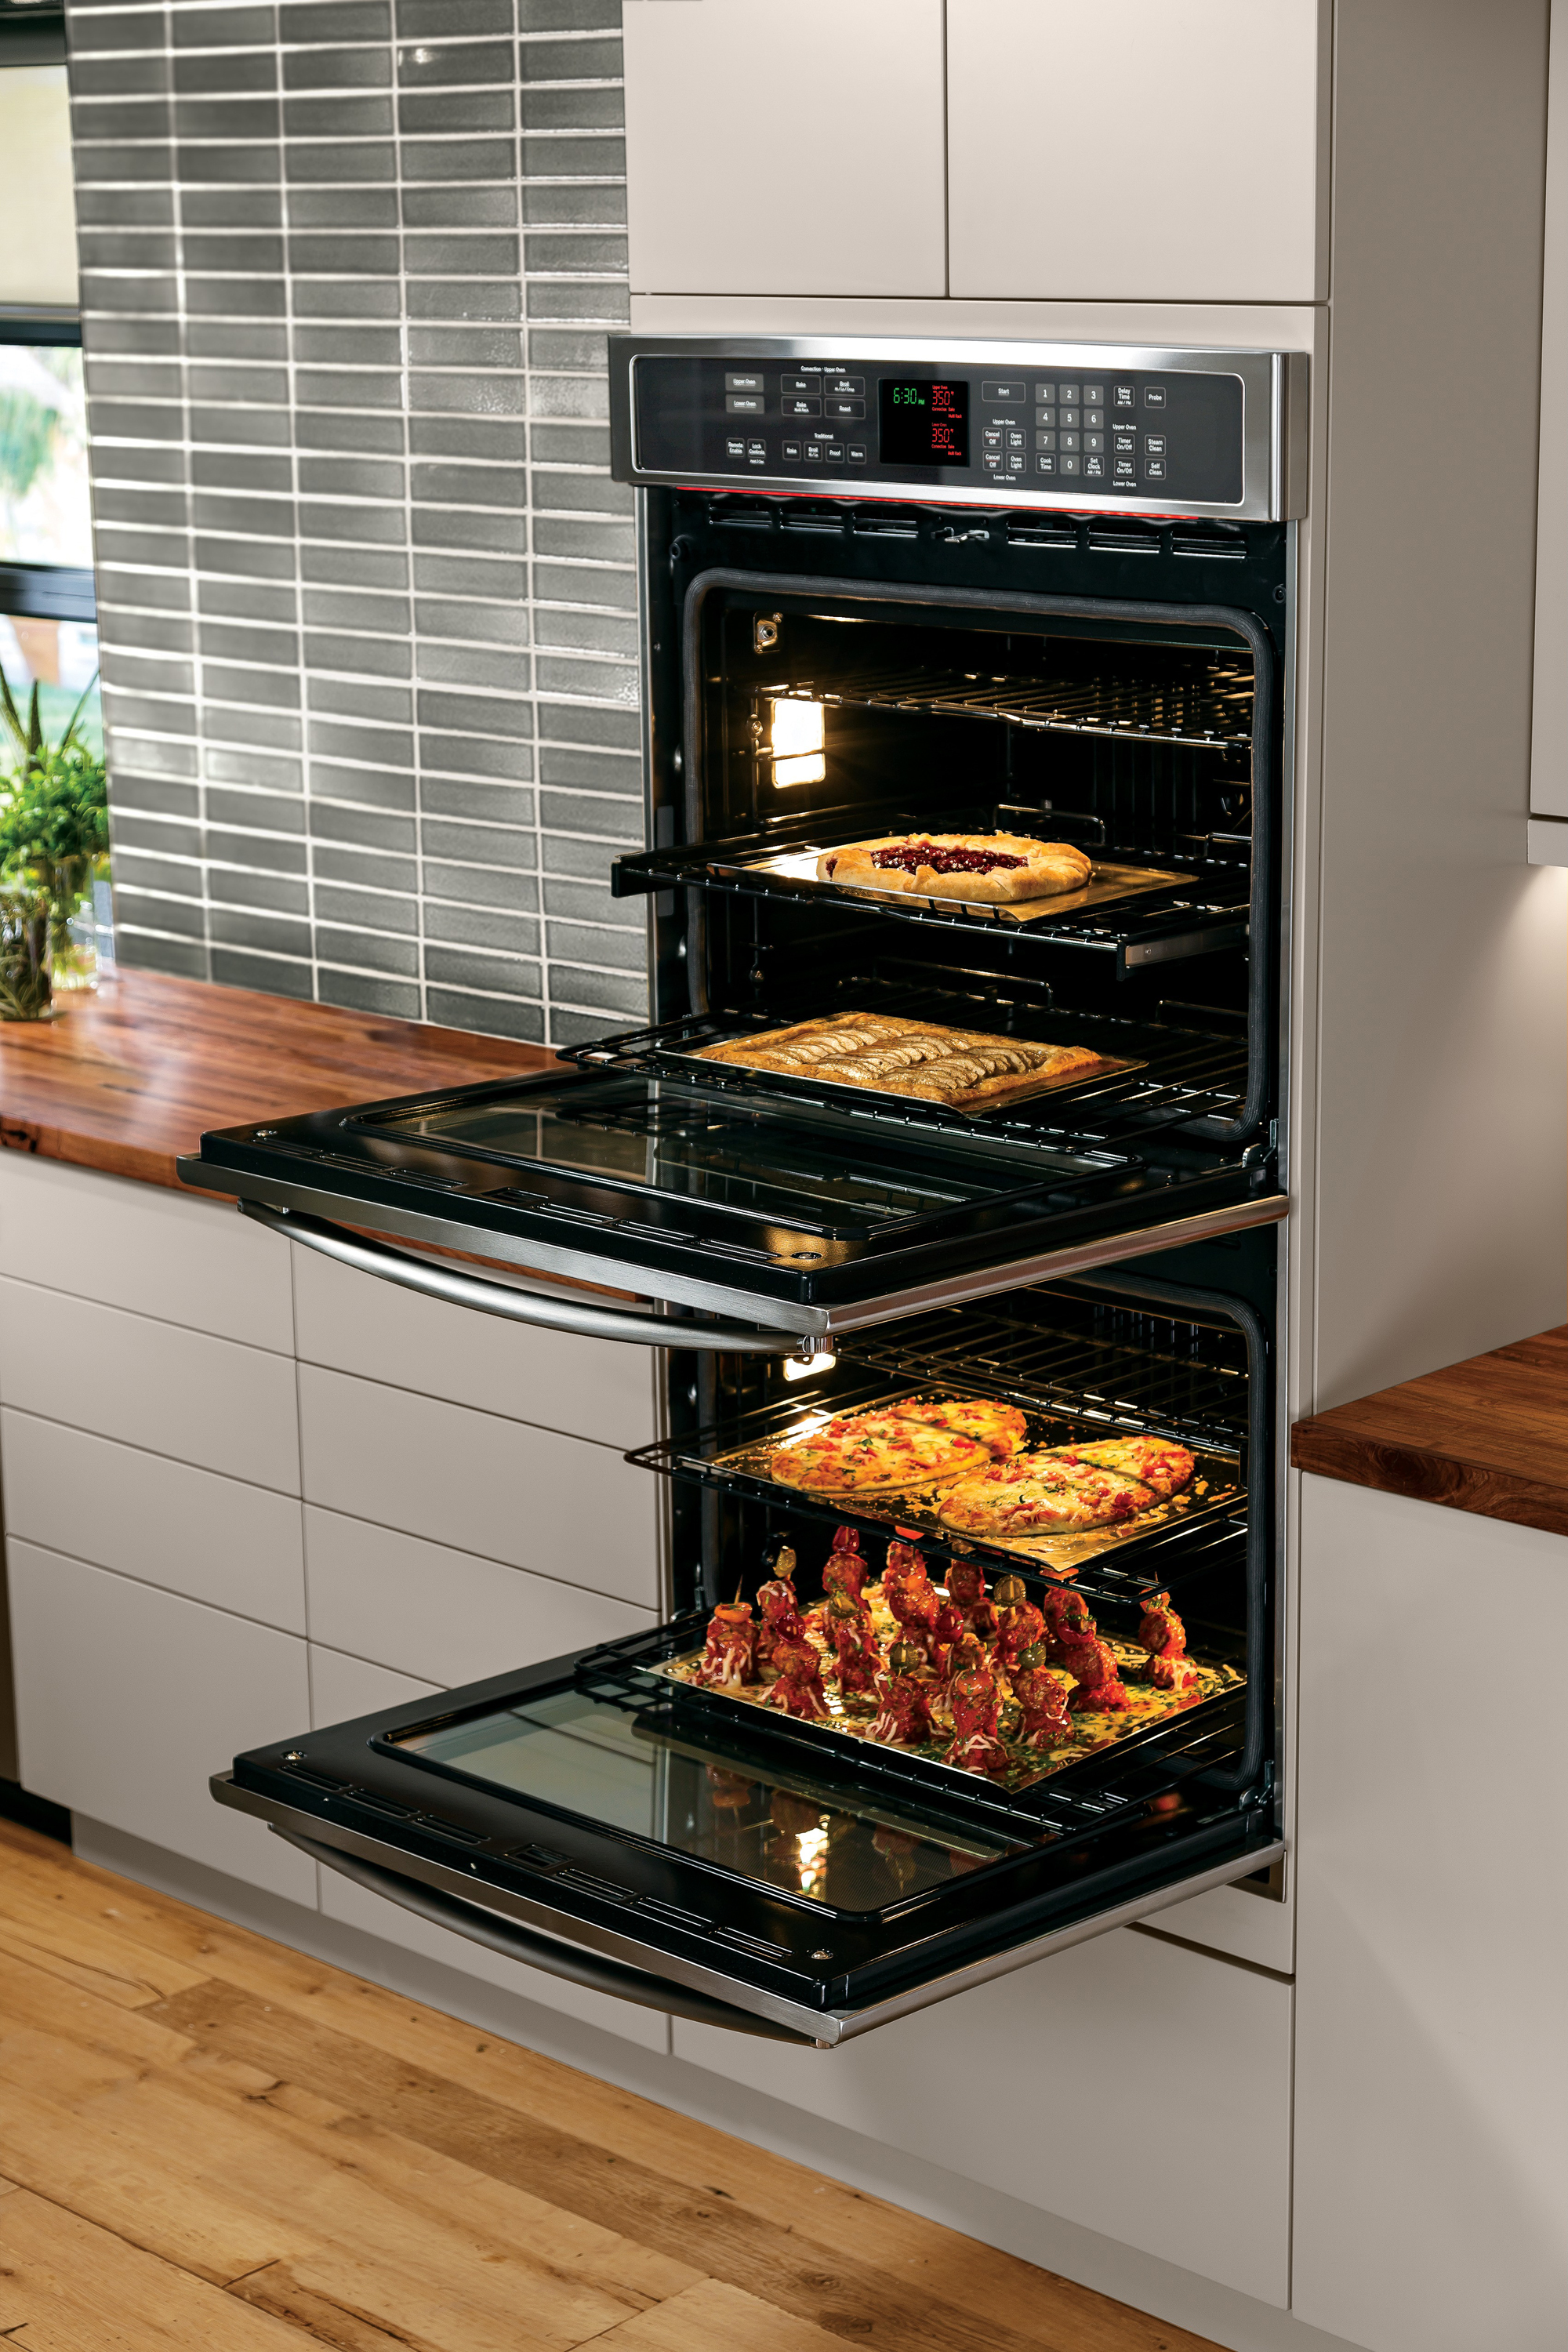 Roam Sweet Home Connection Convection Tech in New GE Wall Ovens